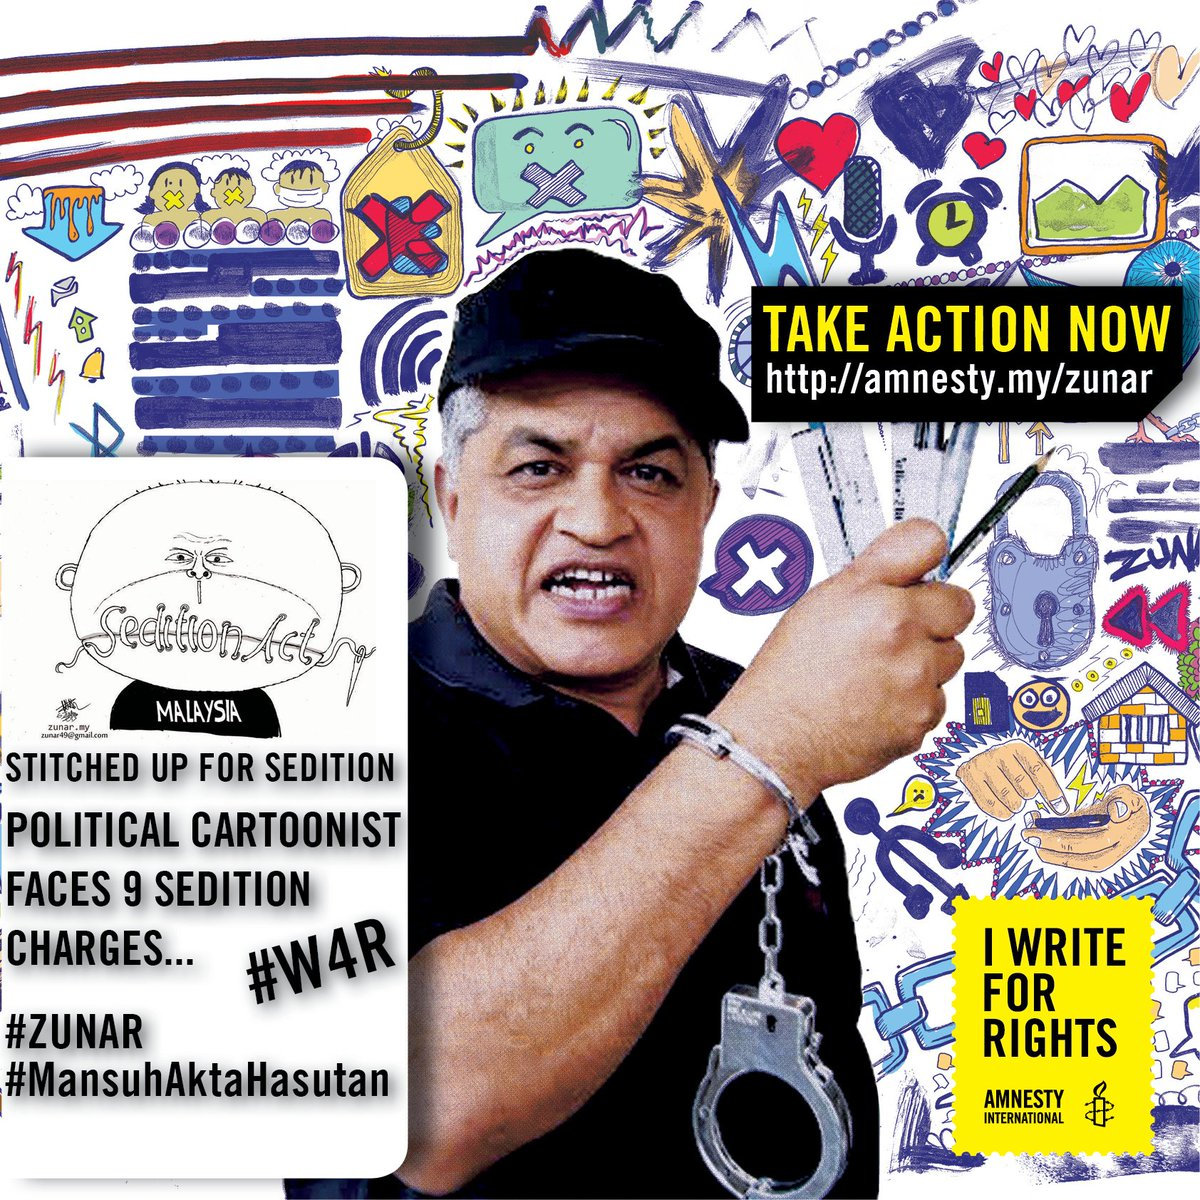 Sign the petition: Drop all charges agnst #Zunar  #InternetKita #MansuhAktaHasutan https://t.co/k0iN2LidLv https://t.co/w50KTvKyFS